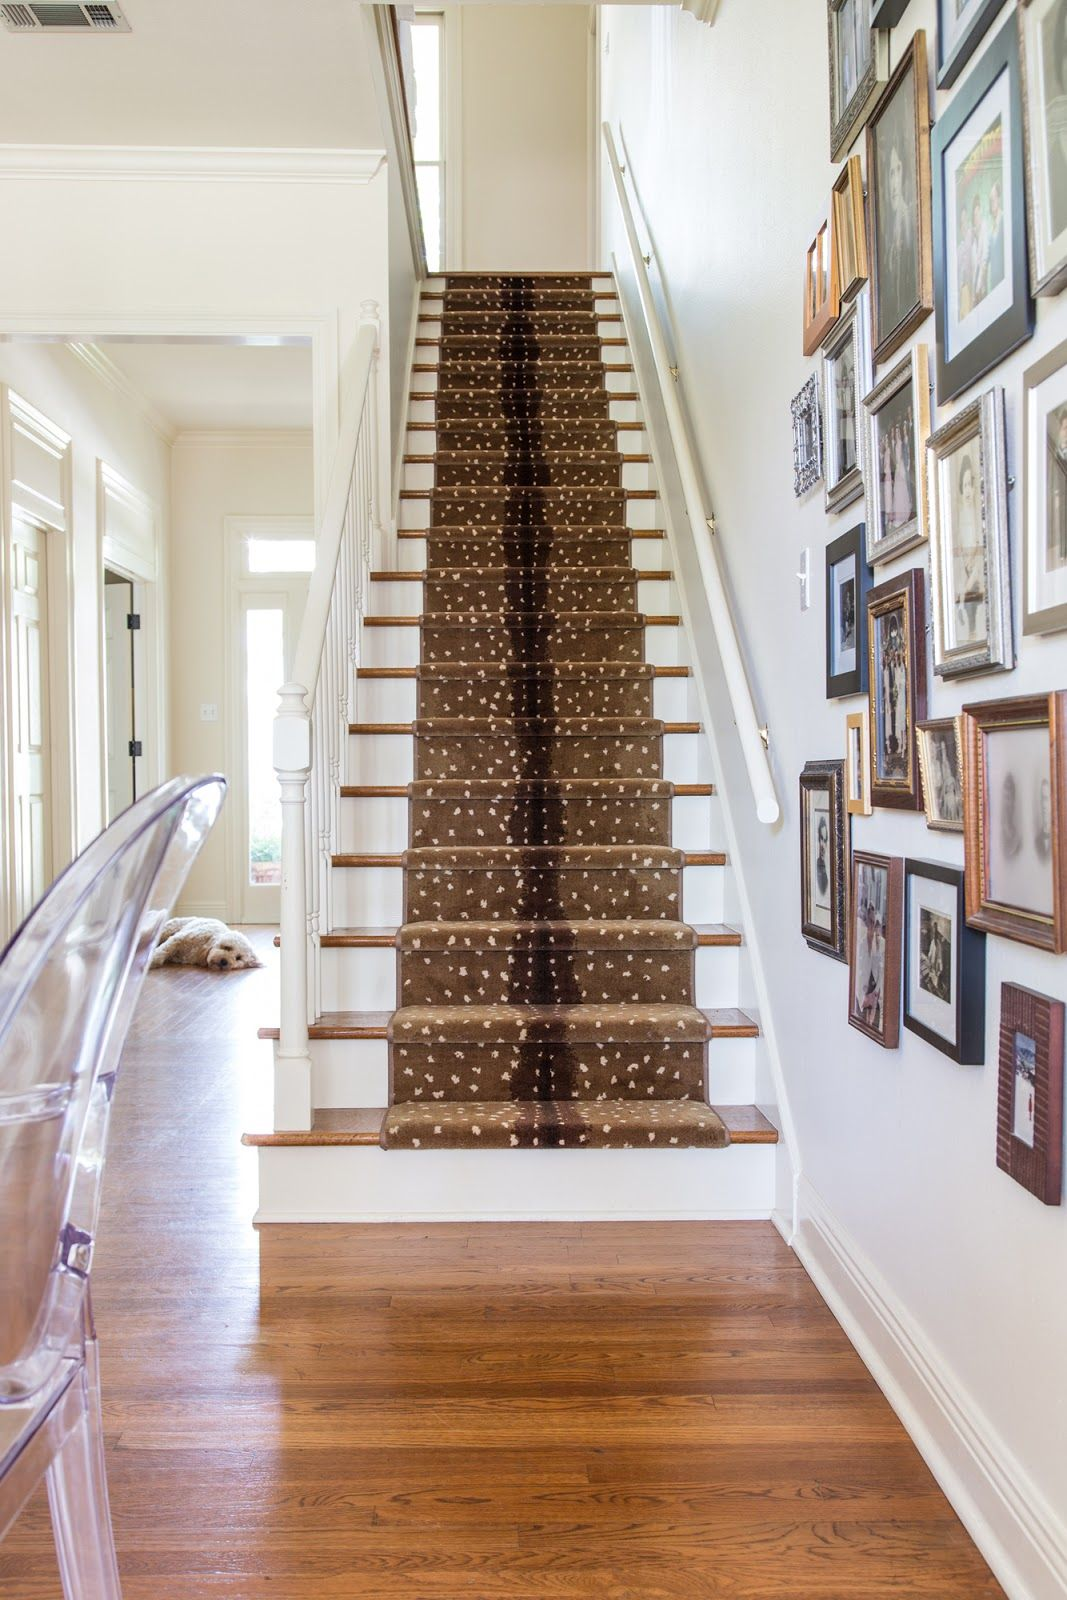 Lighting Basement Washroom Stairs: Antelope Stair Runner By Karastan- Very Forgiving Of